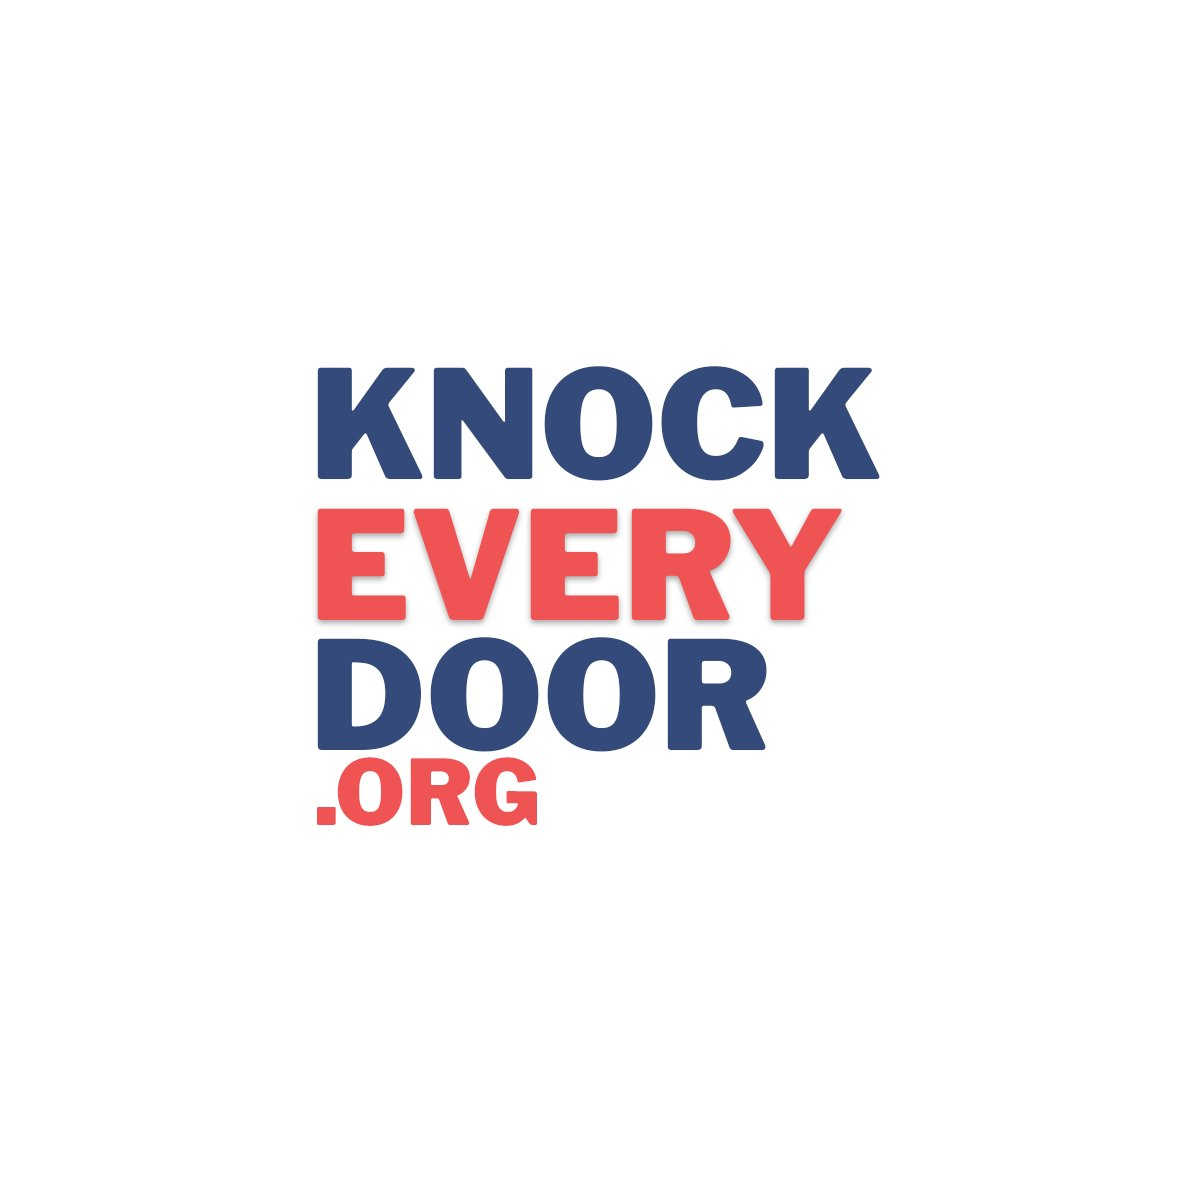 Action of the day: sign up to #KnockEveryDoor